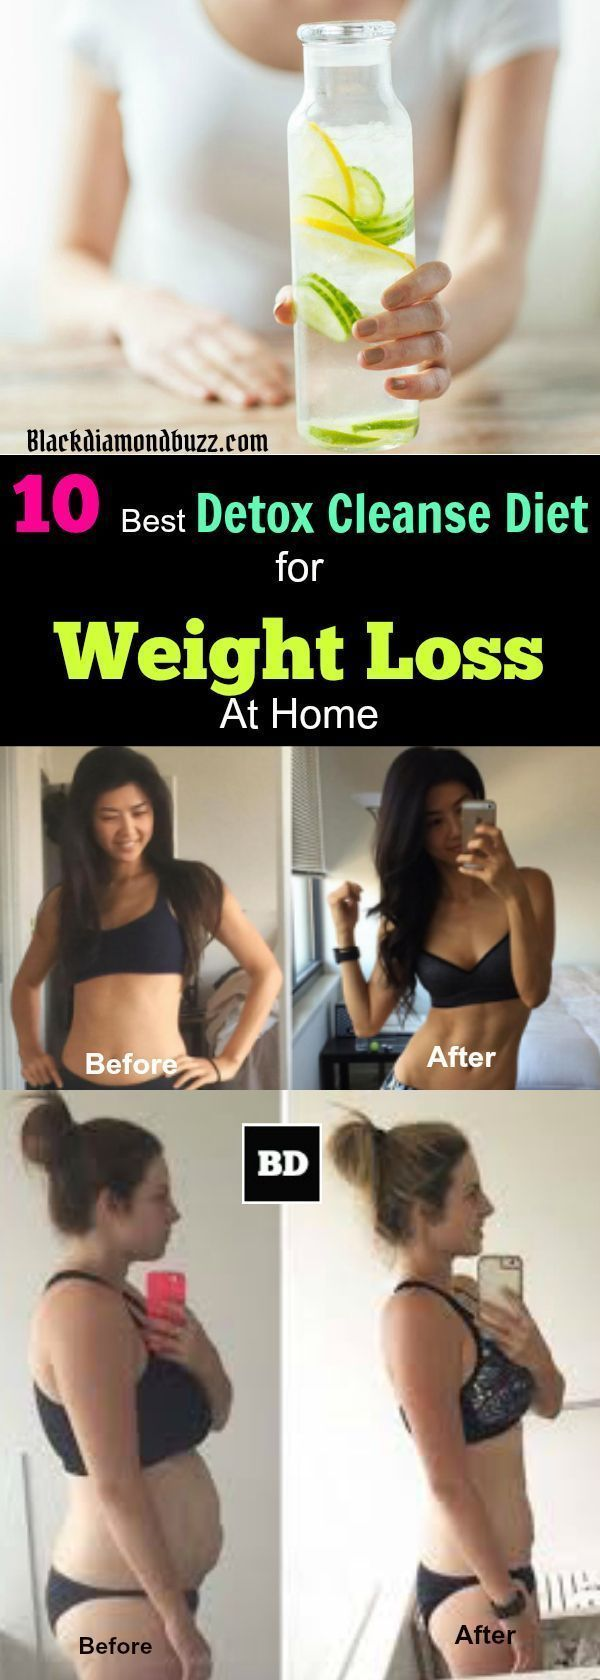 Detox Diet :10 Best Detox Cleanse Diet for Weight Loss At Home- You consider these options of detox your body in 3 day or /and 7 day that make you lose 10 pounds or more and flush out fat deposits toxins in your belly and body in general. Colon cleanse a #CleanseAndDetoxDiet